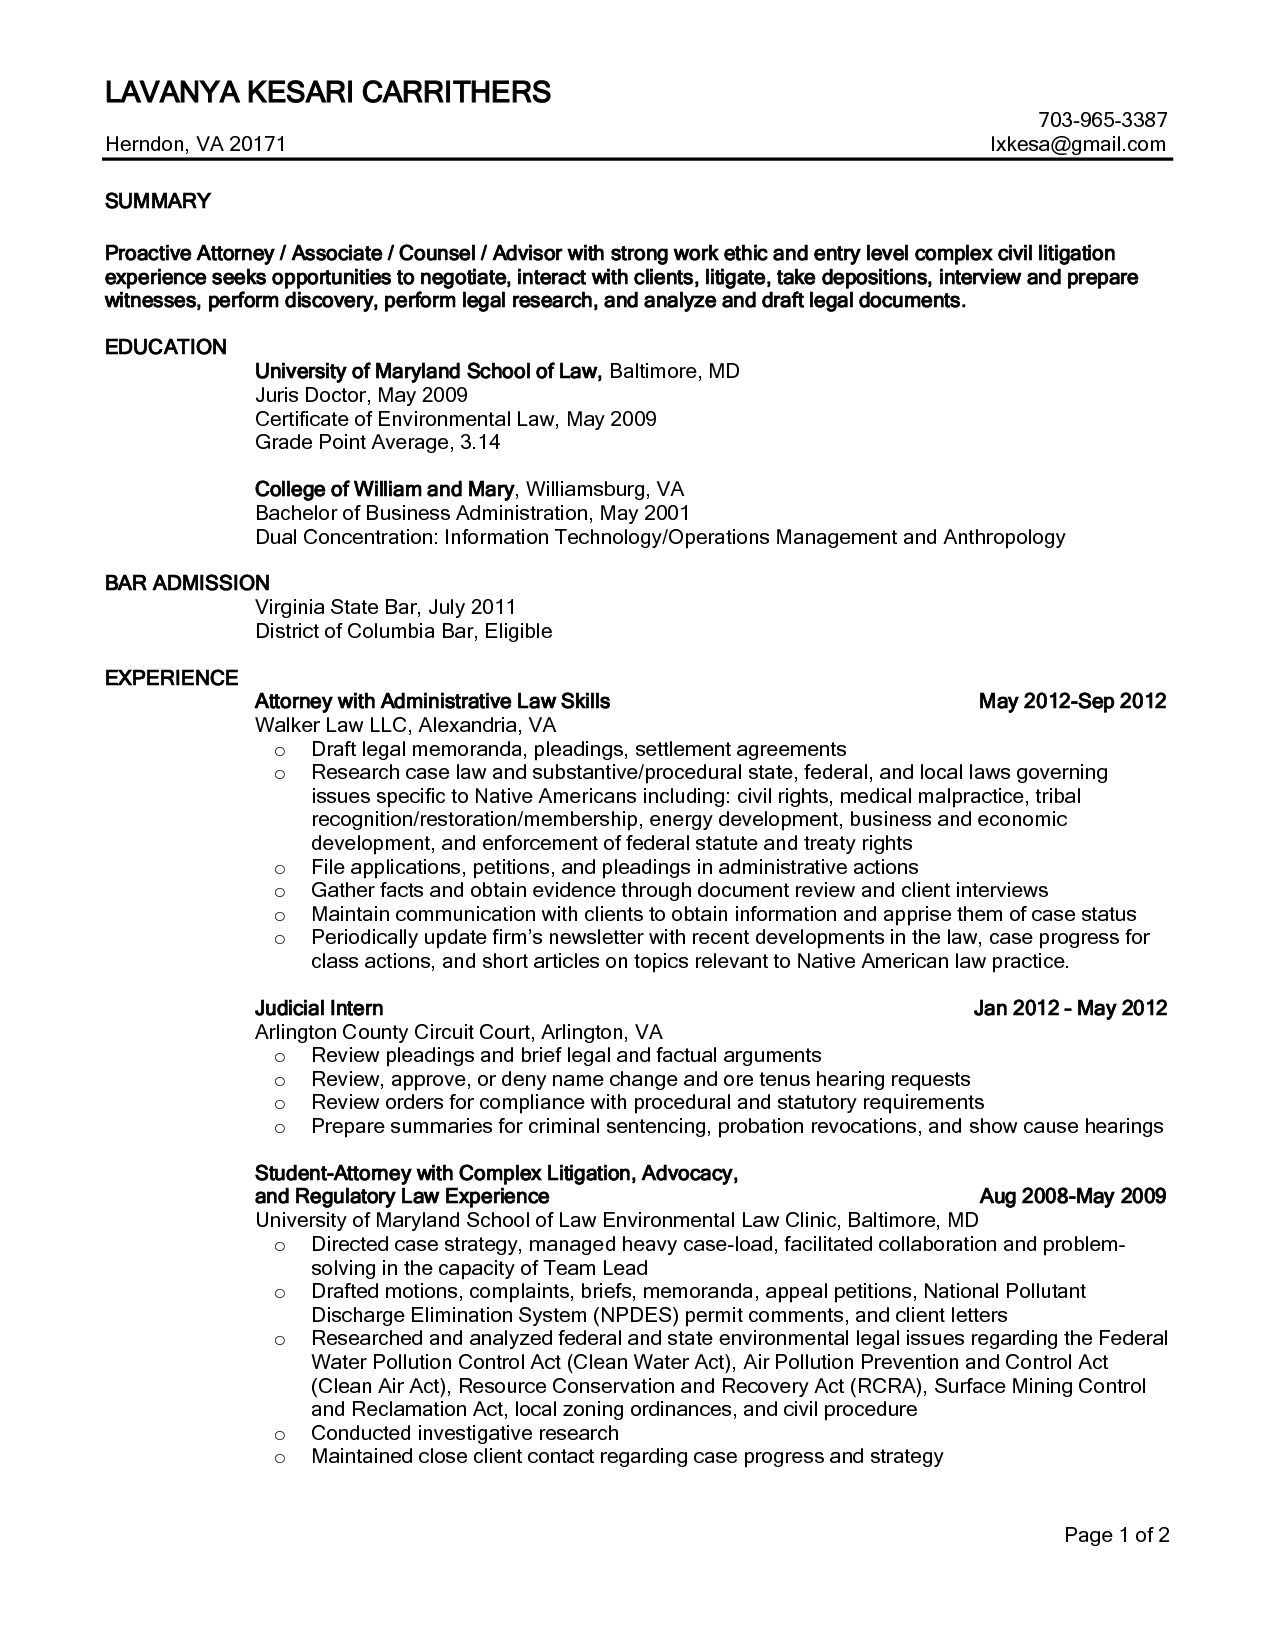 personal injury attorney resume samples